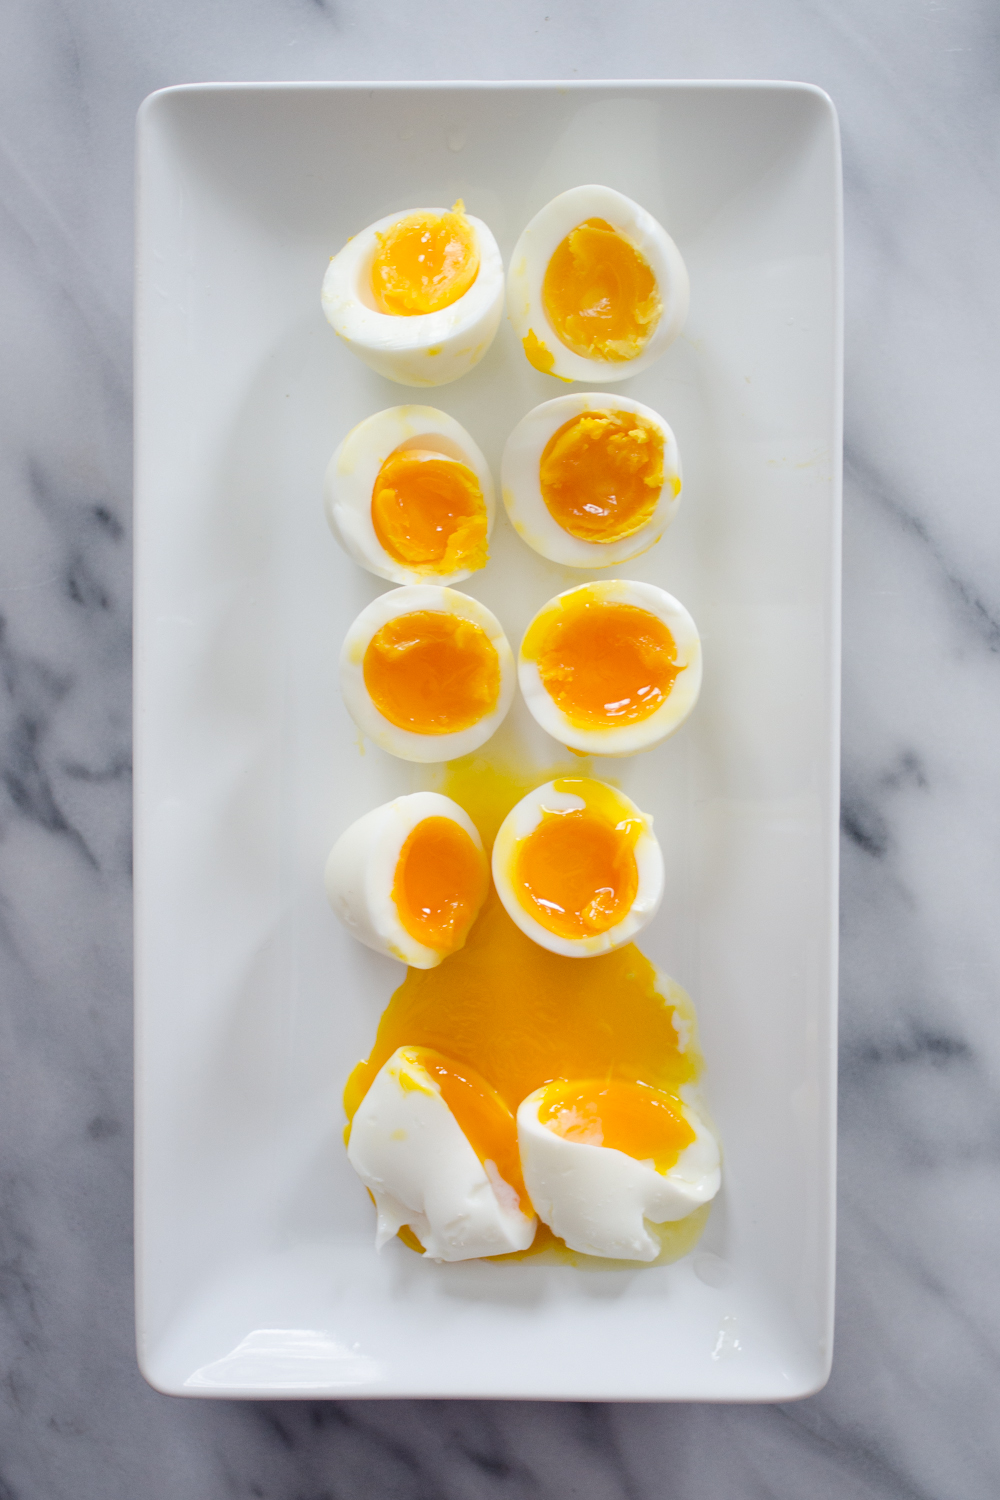 How to Make Perfect Soft Boiled Eggs - Buttered Side Up